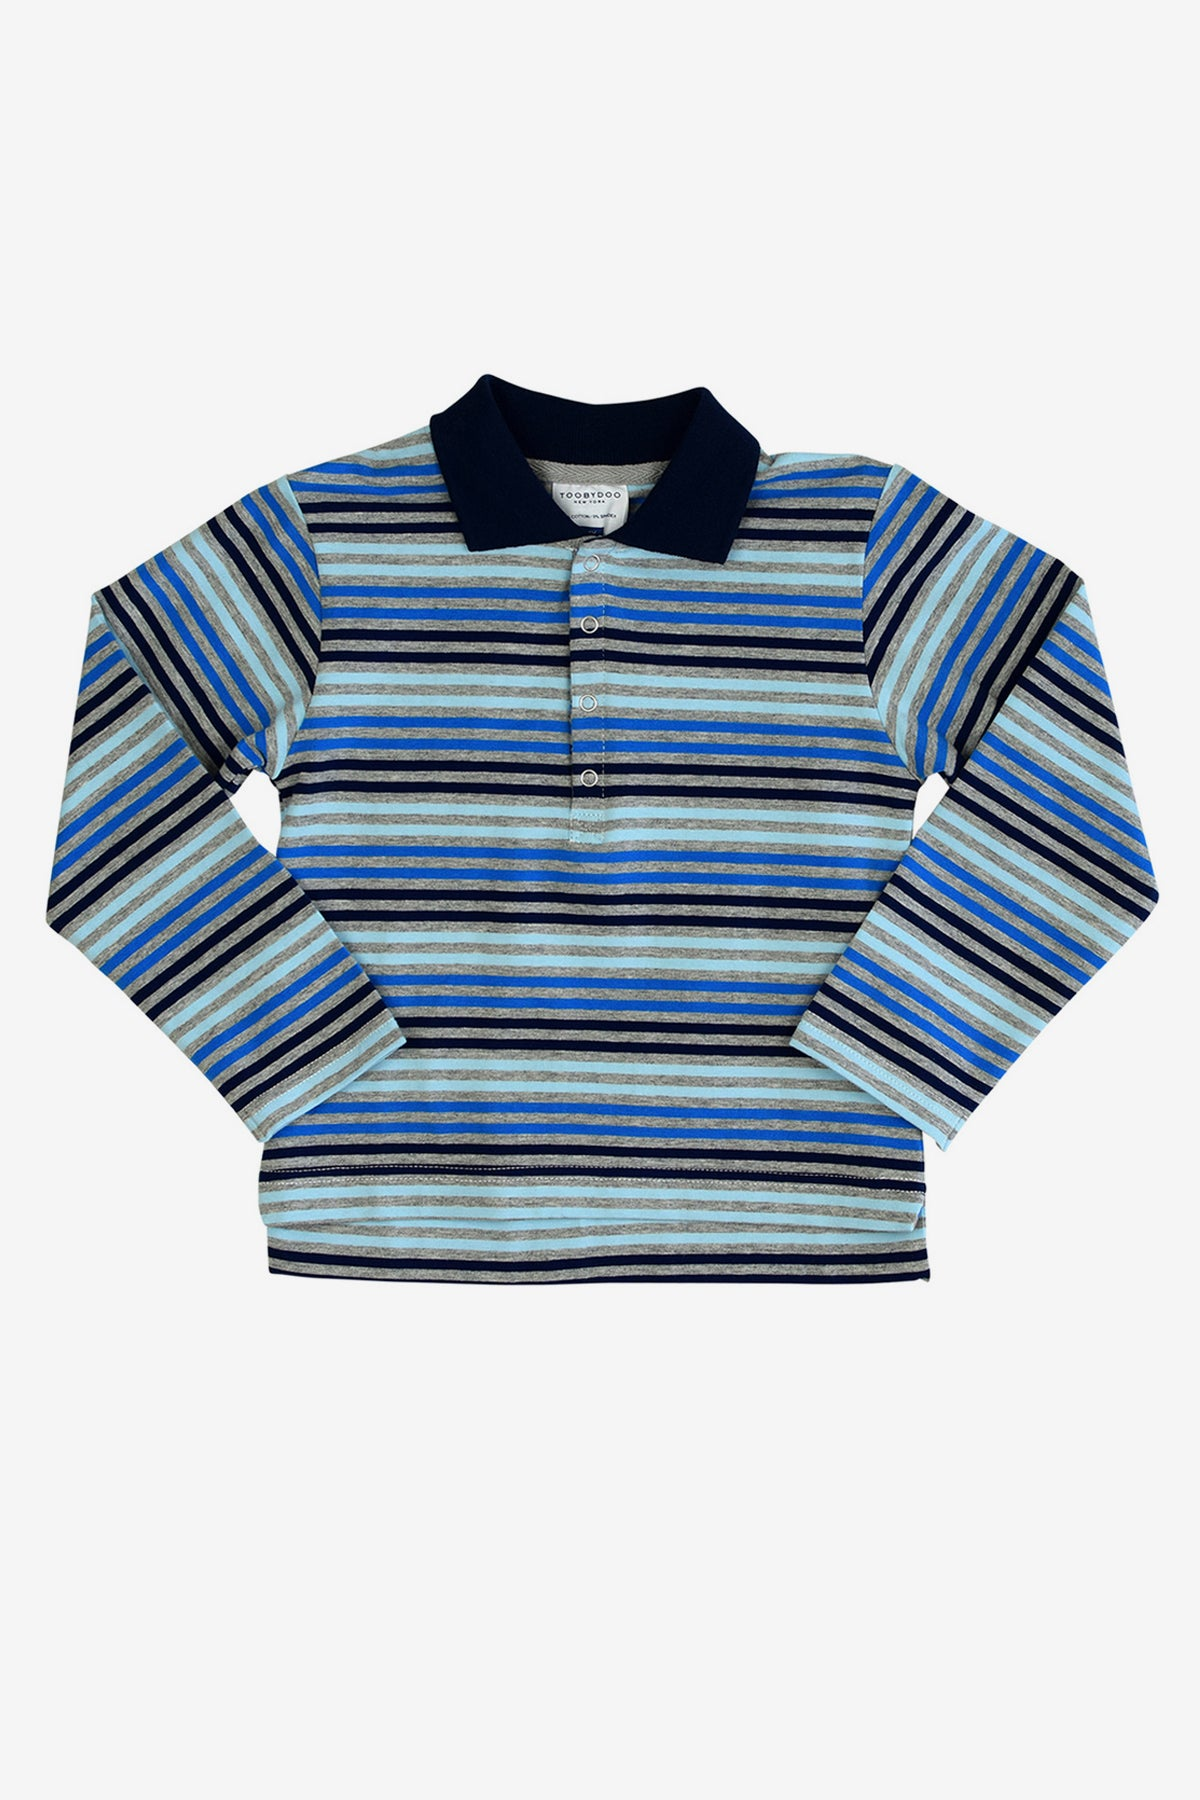 Toobydoo Long Sleeve Polo Shirt - Light Blue